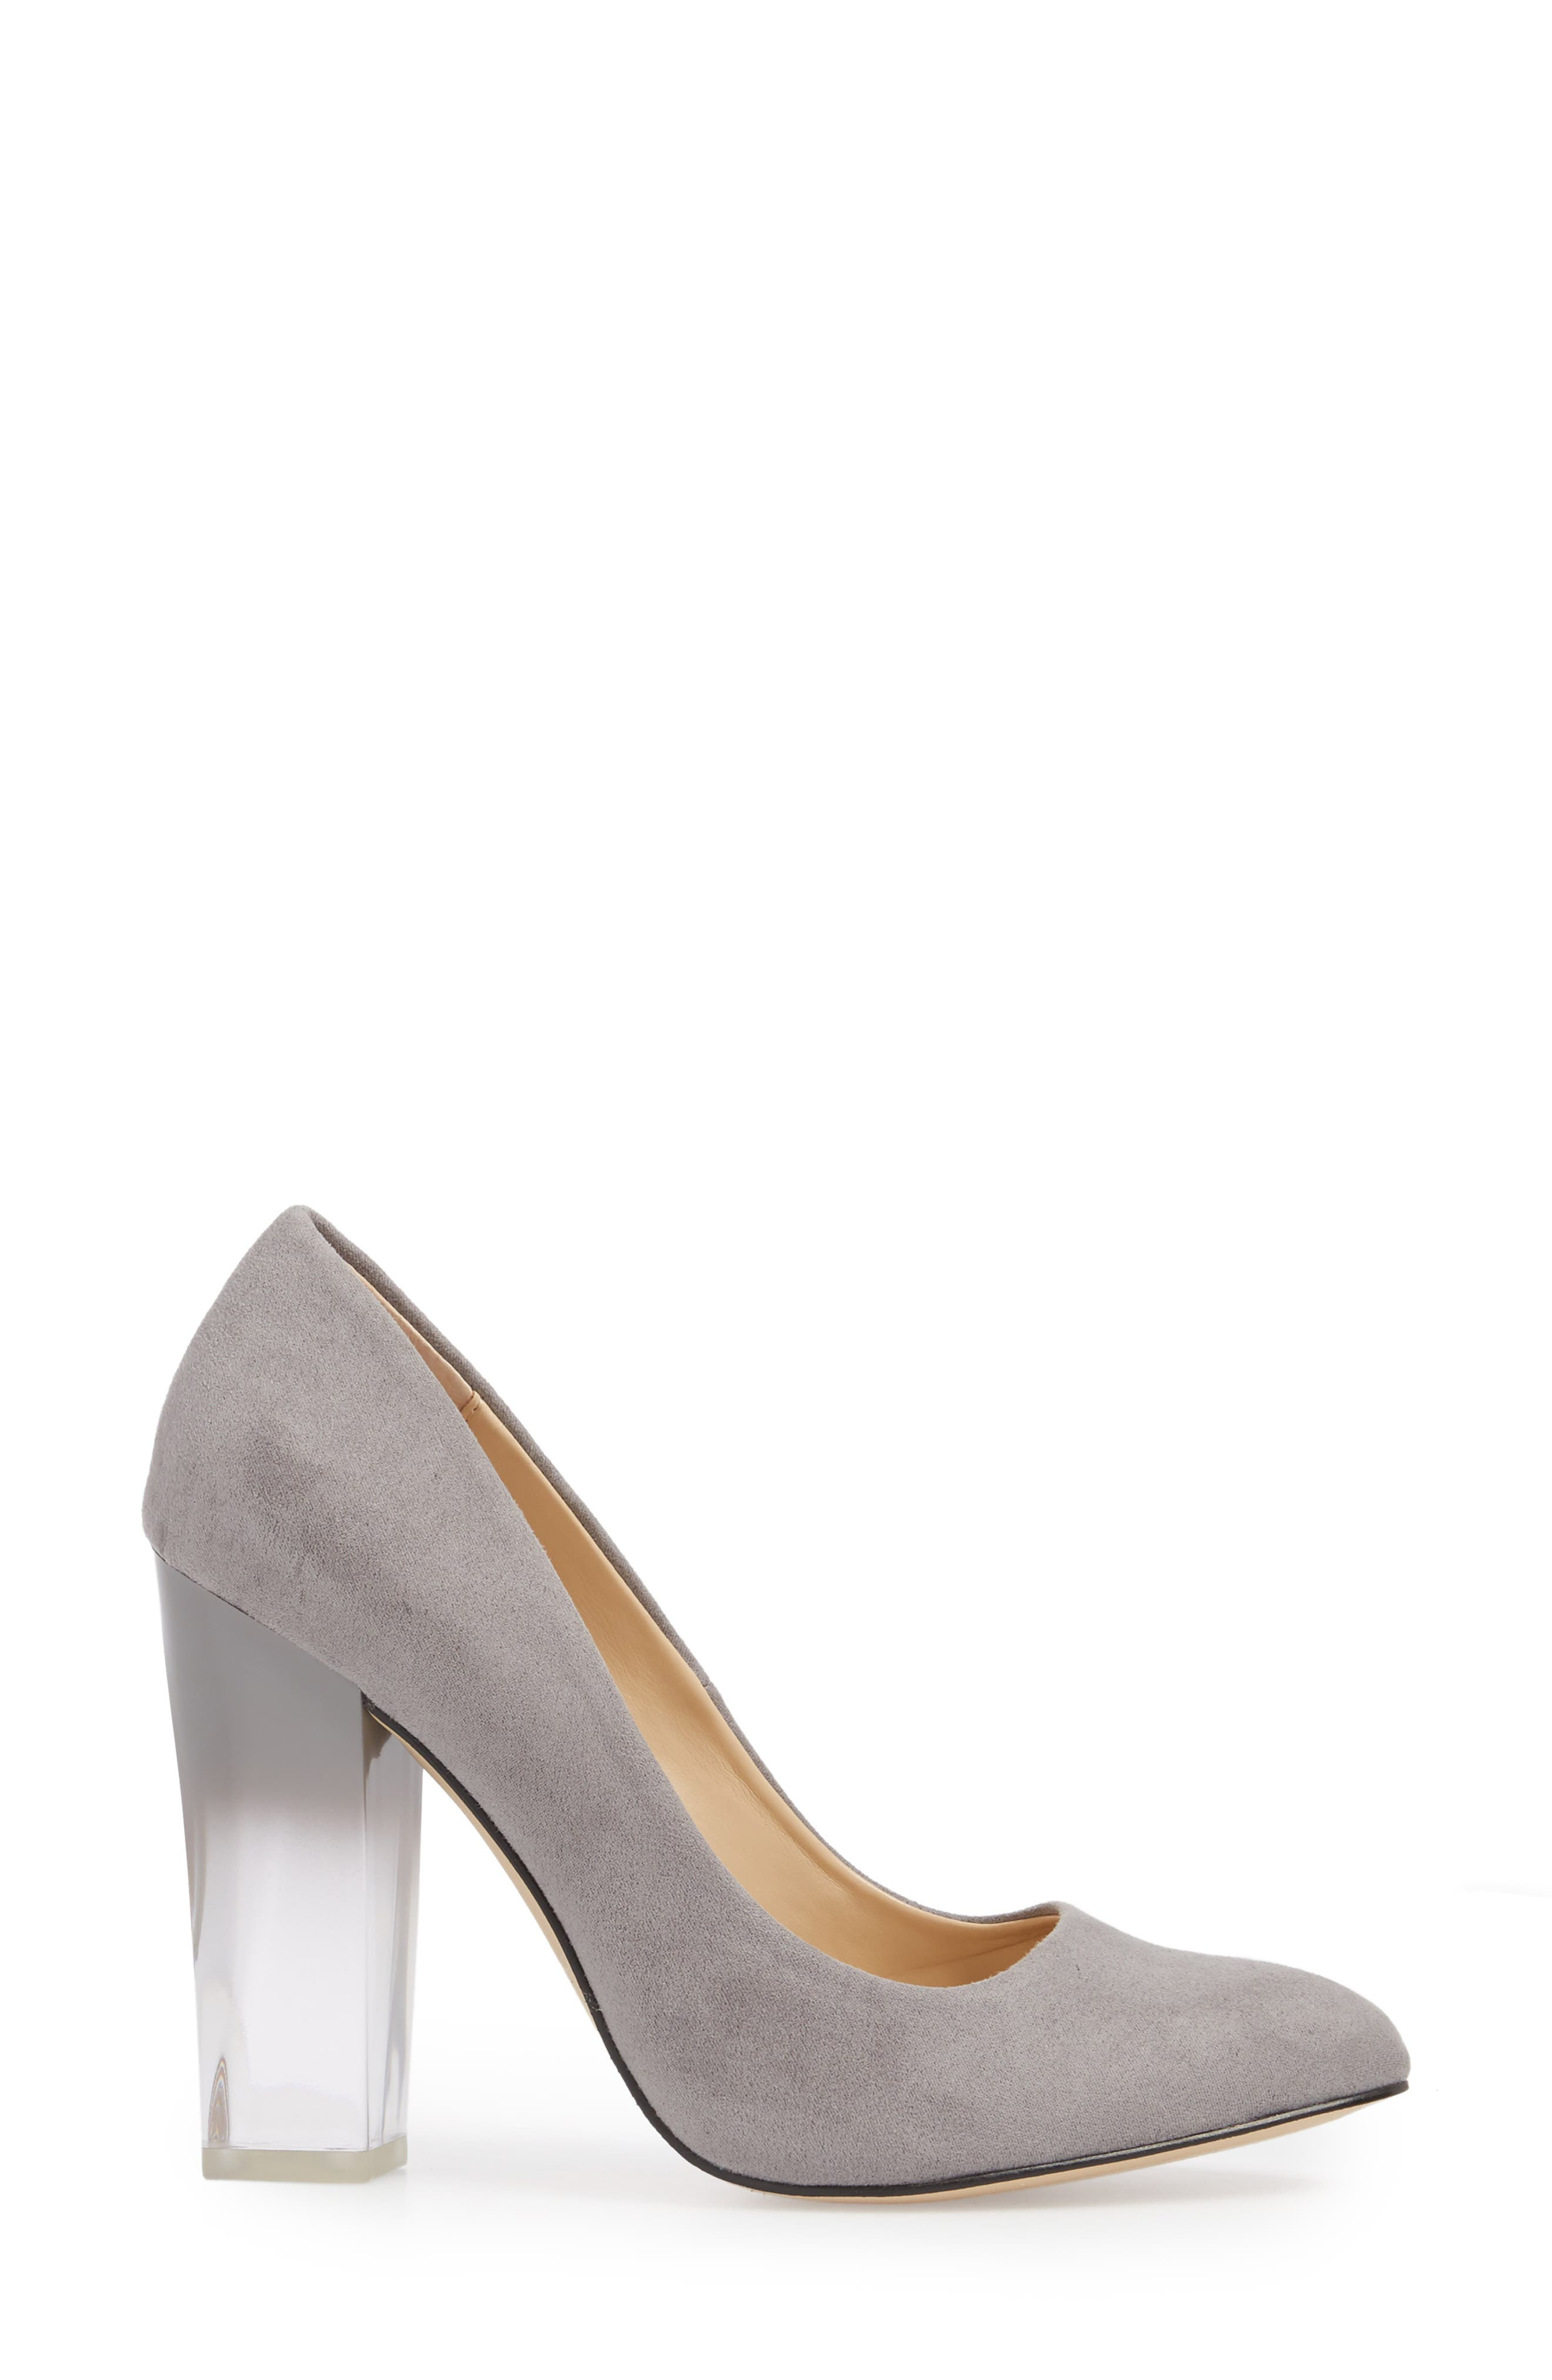 Statement Heel Pump,                             Alternate thumbnail 3, color,                             Dark Nickel